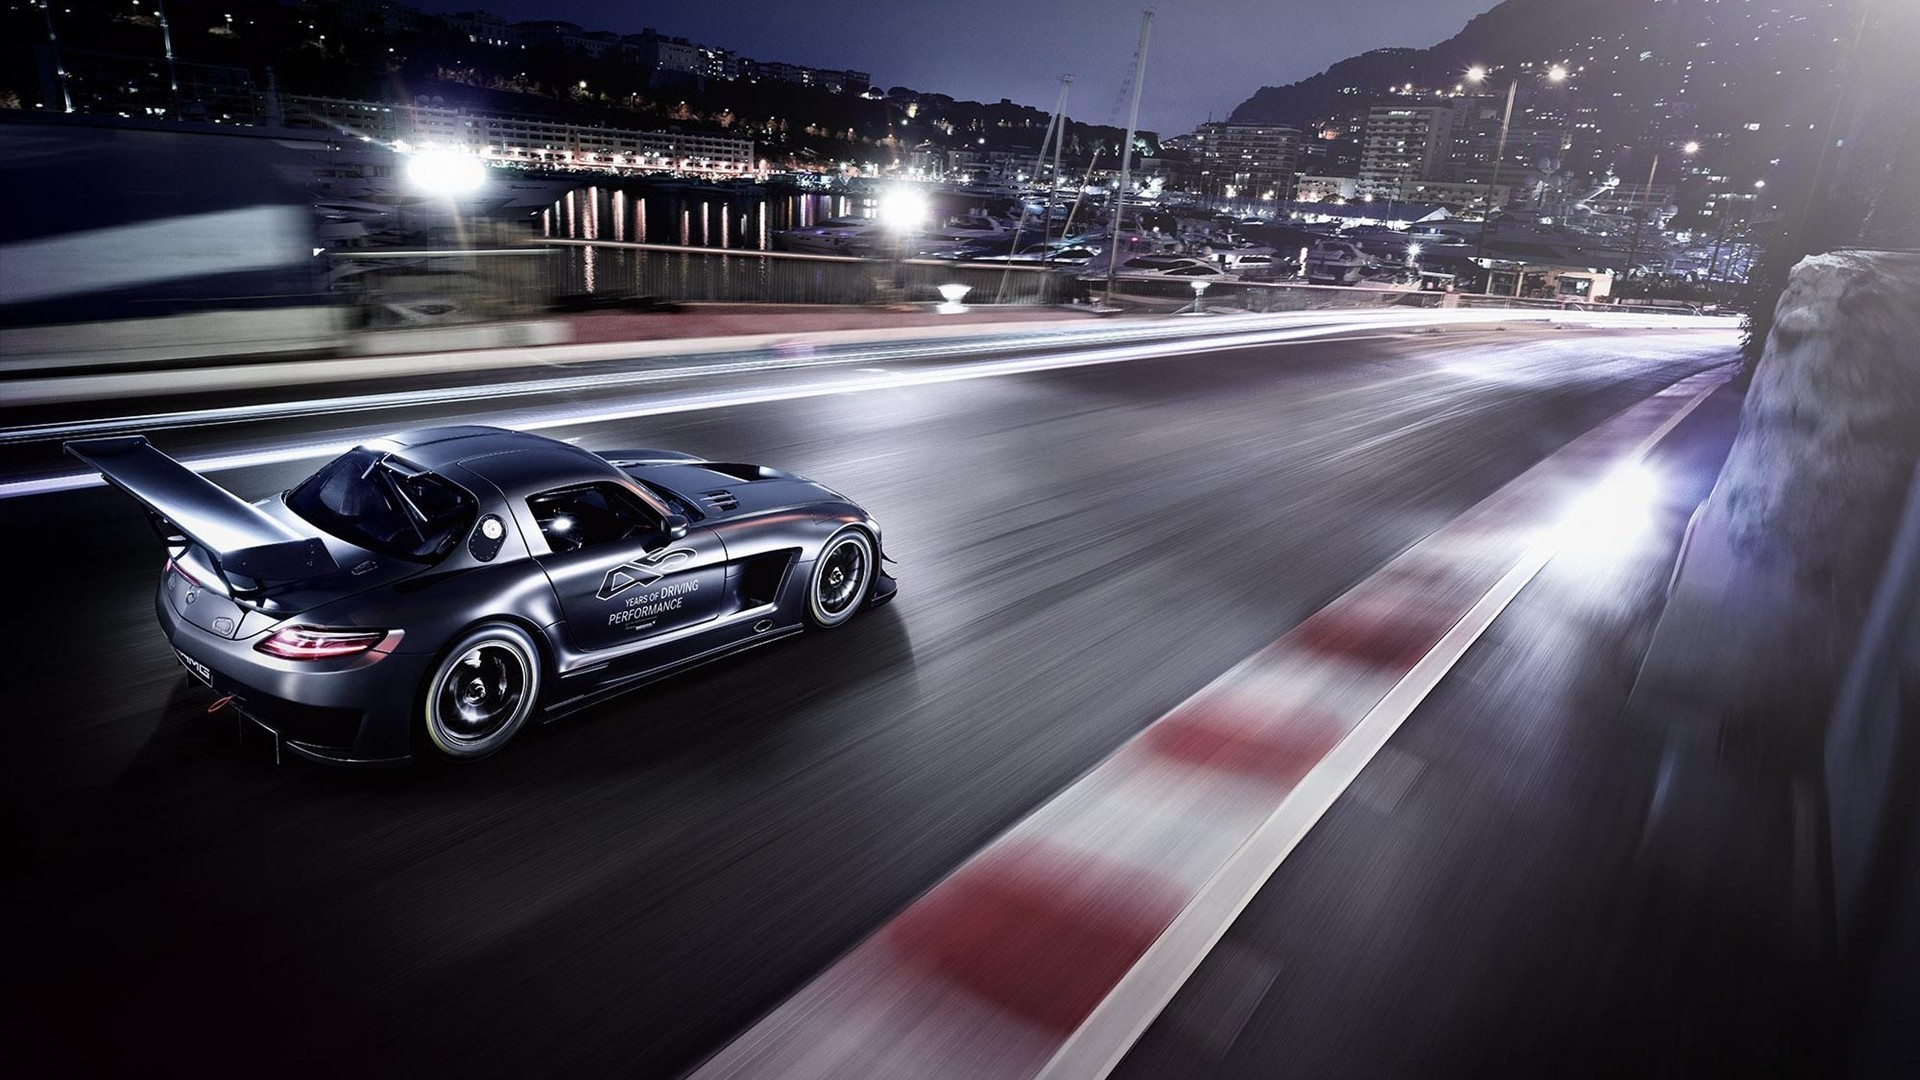 Racing mercedes benz mercedes benz sls amg gt wallpaper for Mercedes benz race